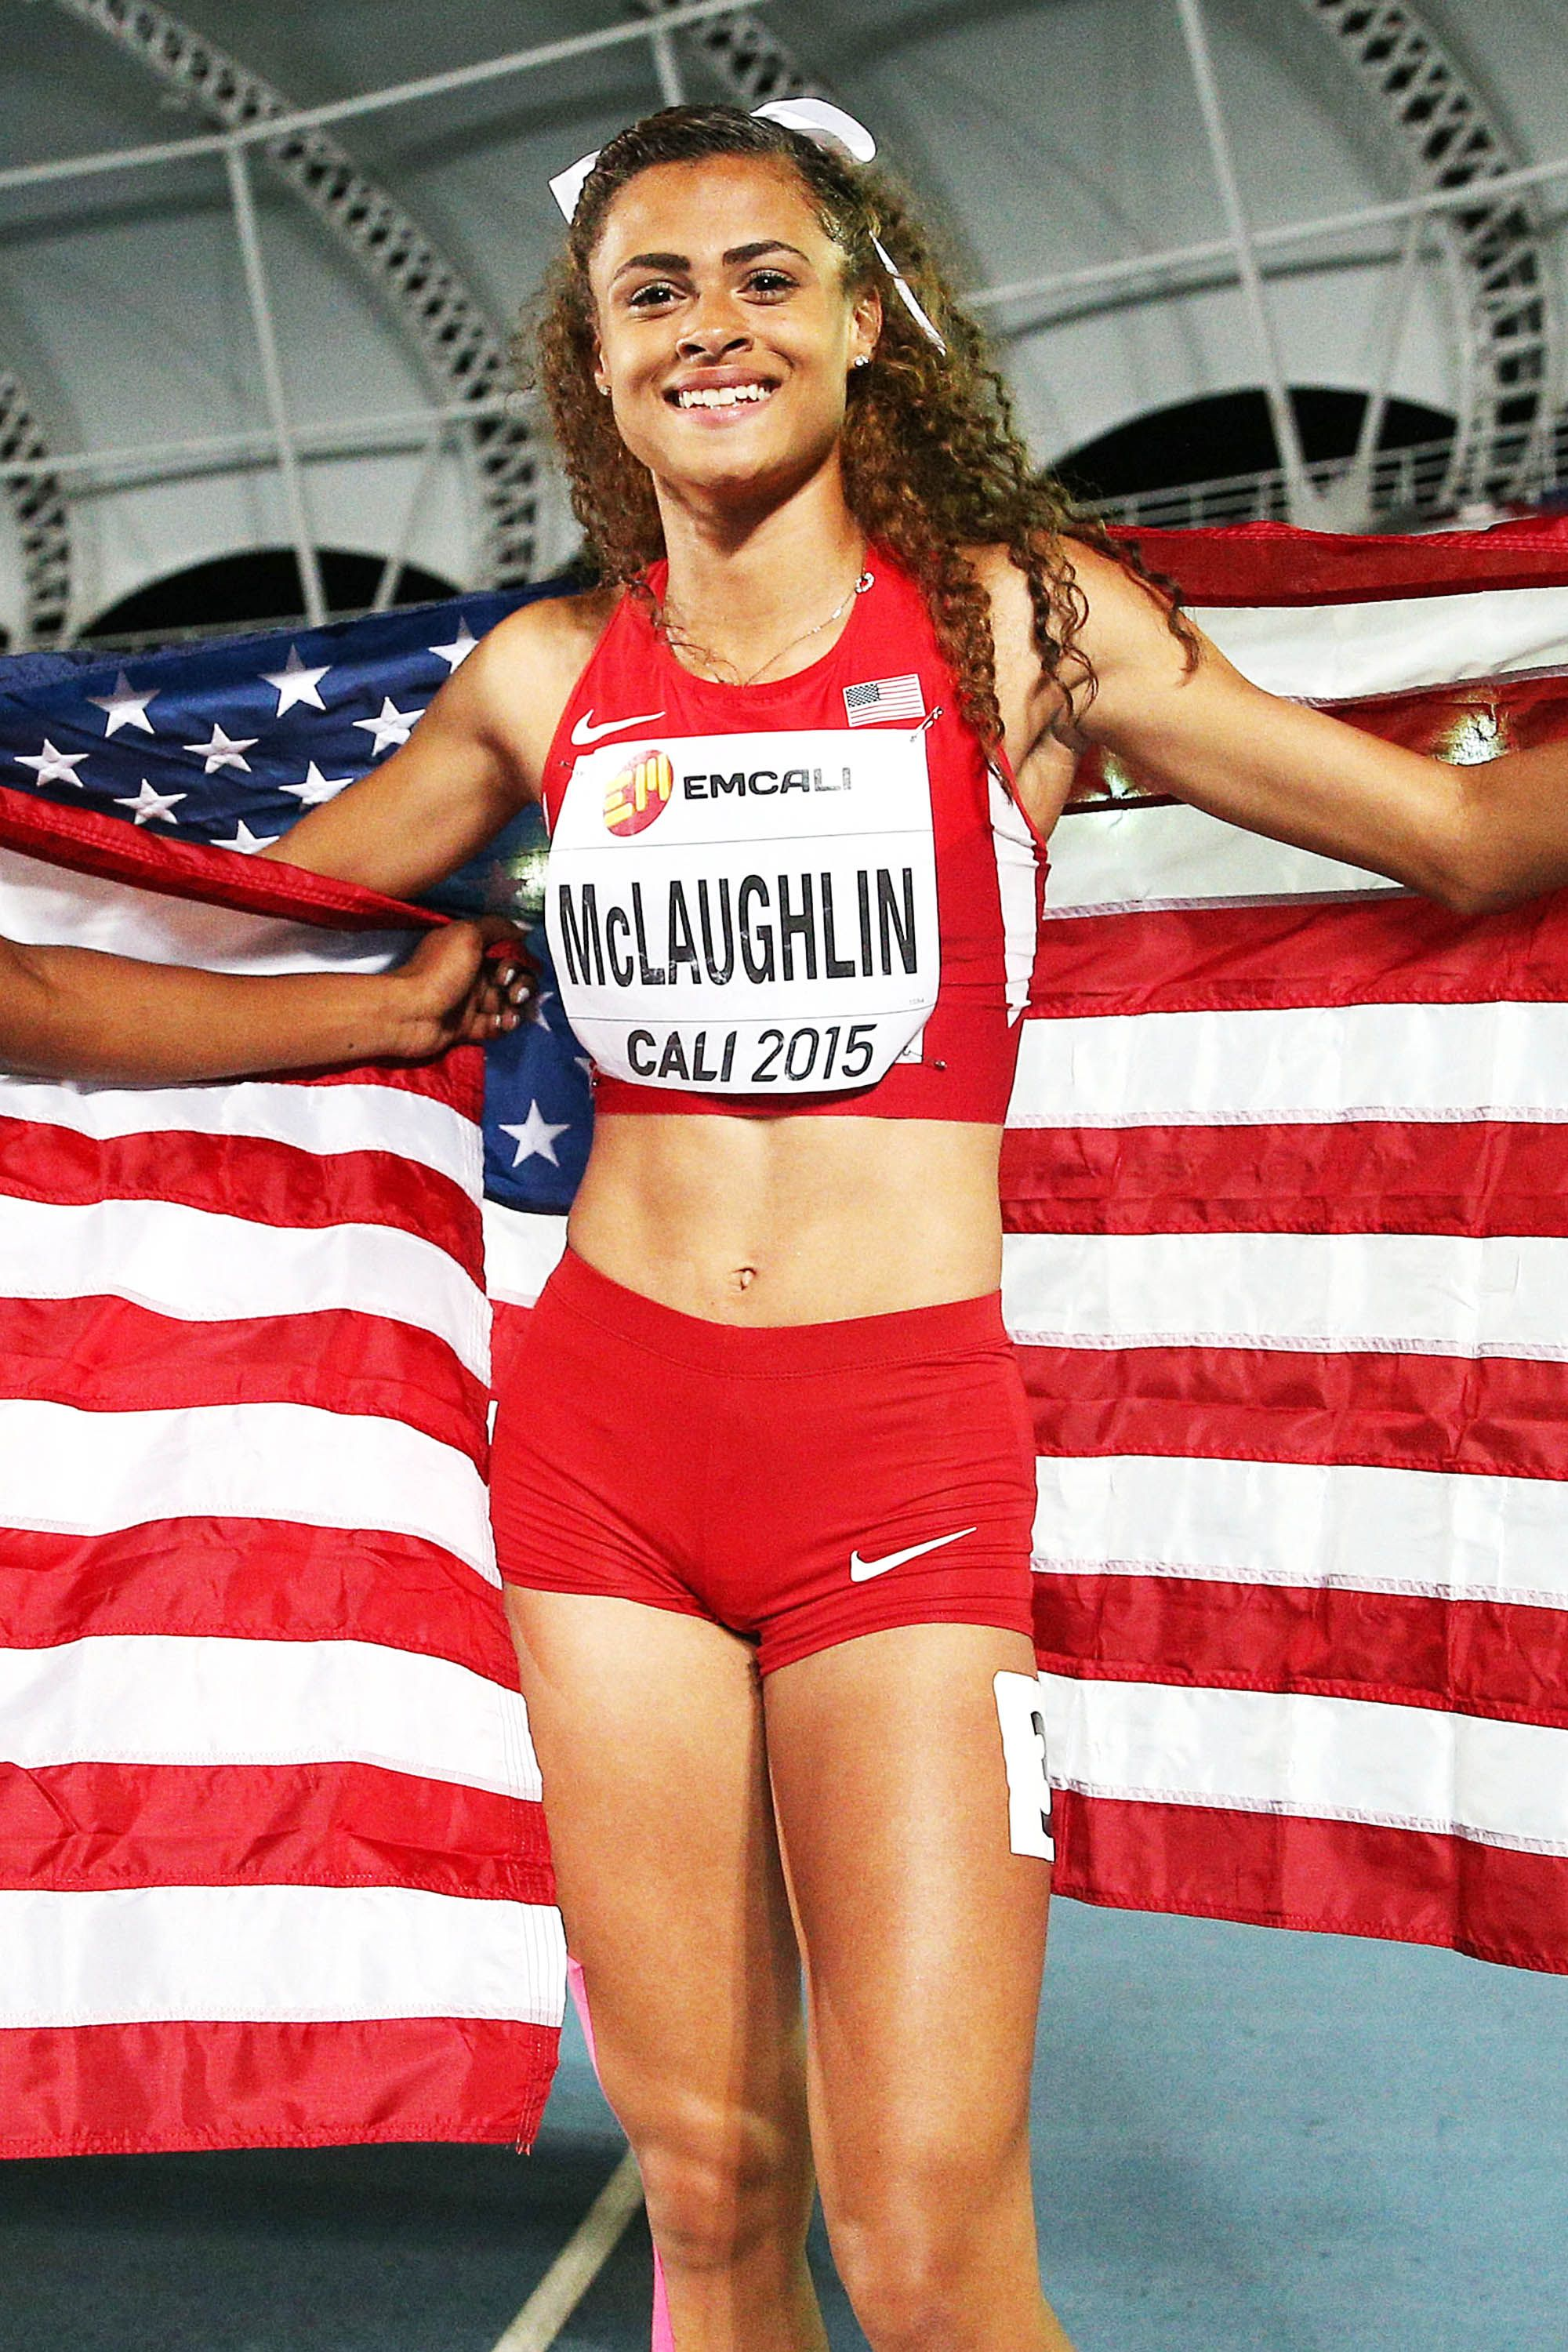 <p>This New Jersey native is the youngest track & field Olympian on Team USA, but you won't spot her on TV until this week: She's skipping the Opening Ceremony to celebrate her 17th birthday at home. </p>